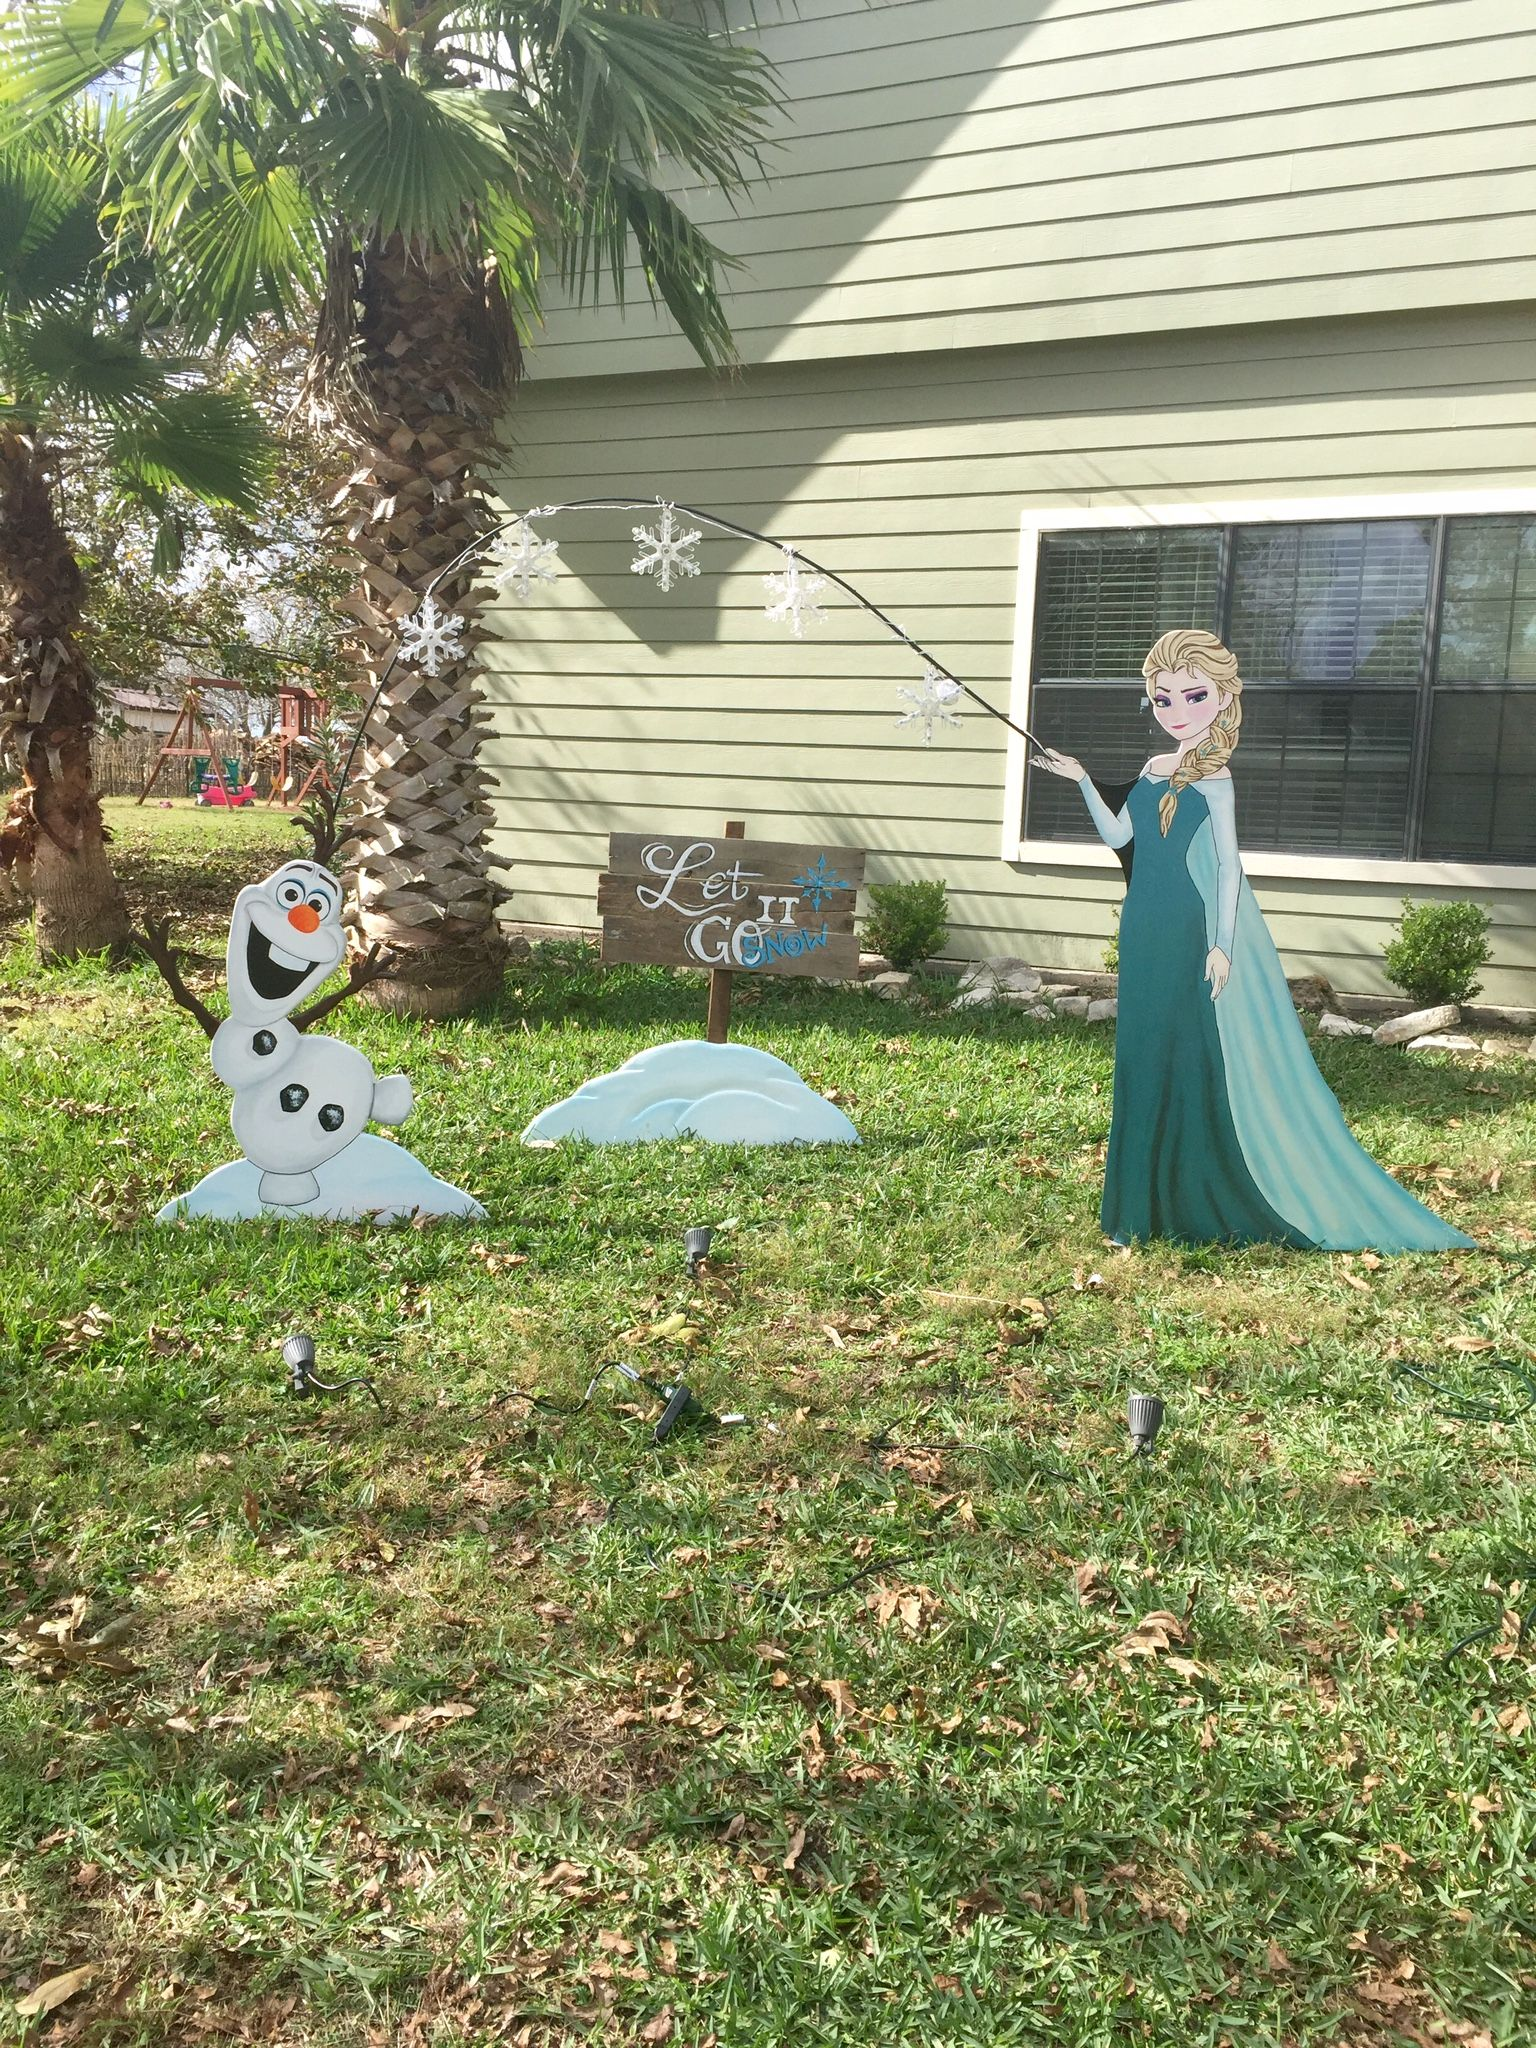 Wood yard decorations - Disney S Frozen Elsa And Olaf Lawn Ornaments By Nevermore Creations